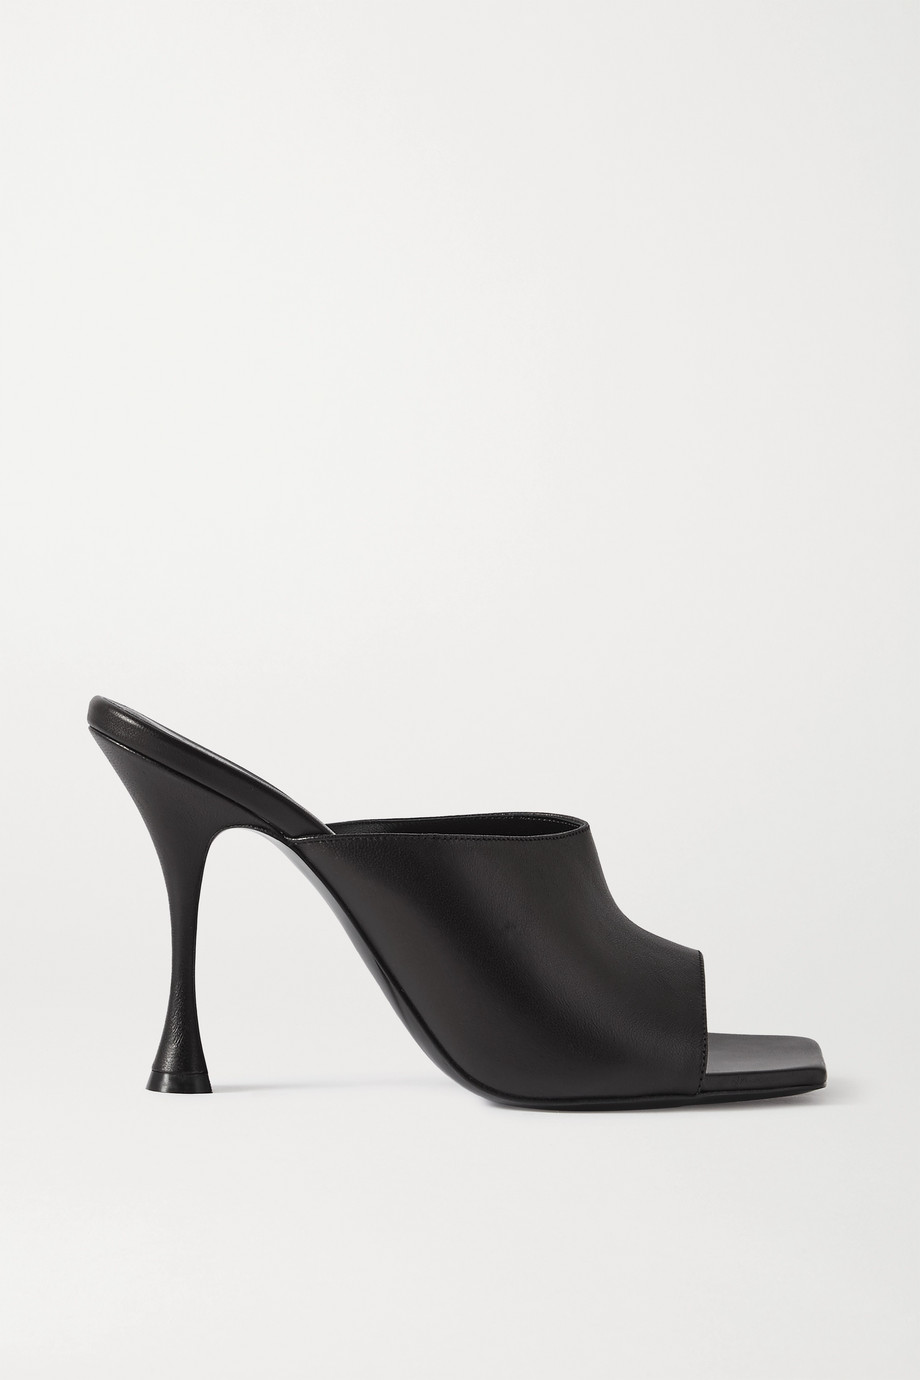 Magda Butrym Estonia leather mules